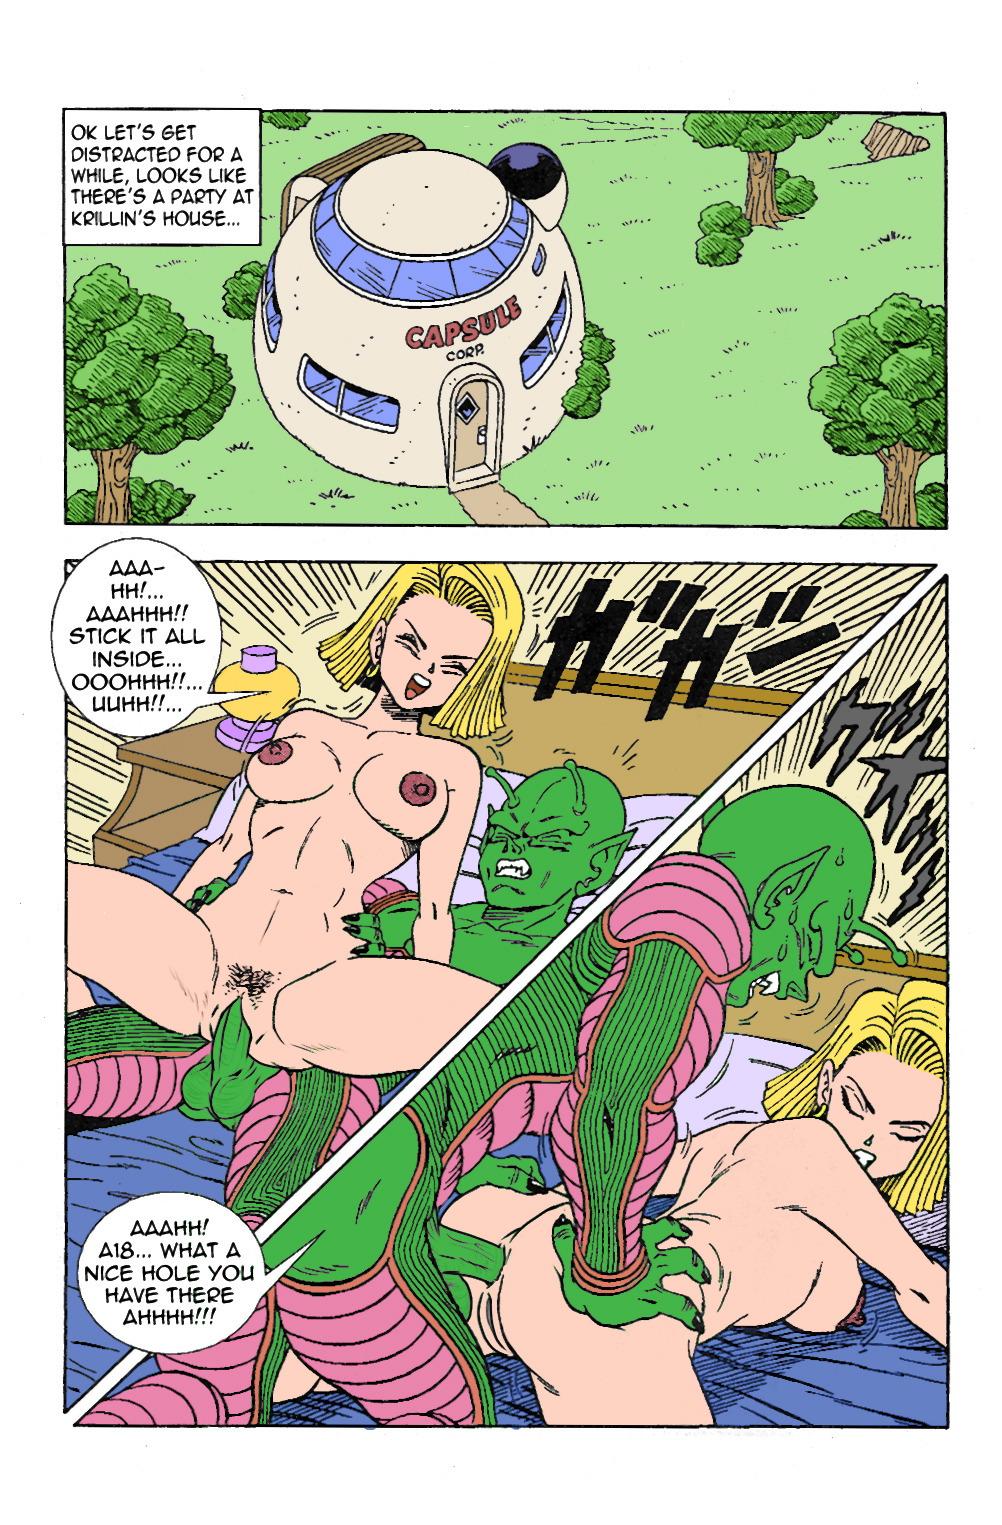 theme, interesting blonde enjoys a multiple cock drilling more on simply ridiculous